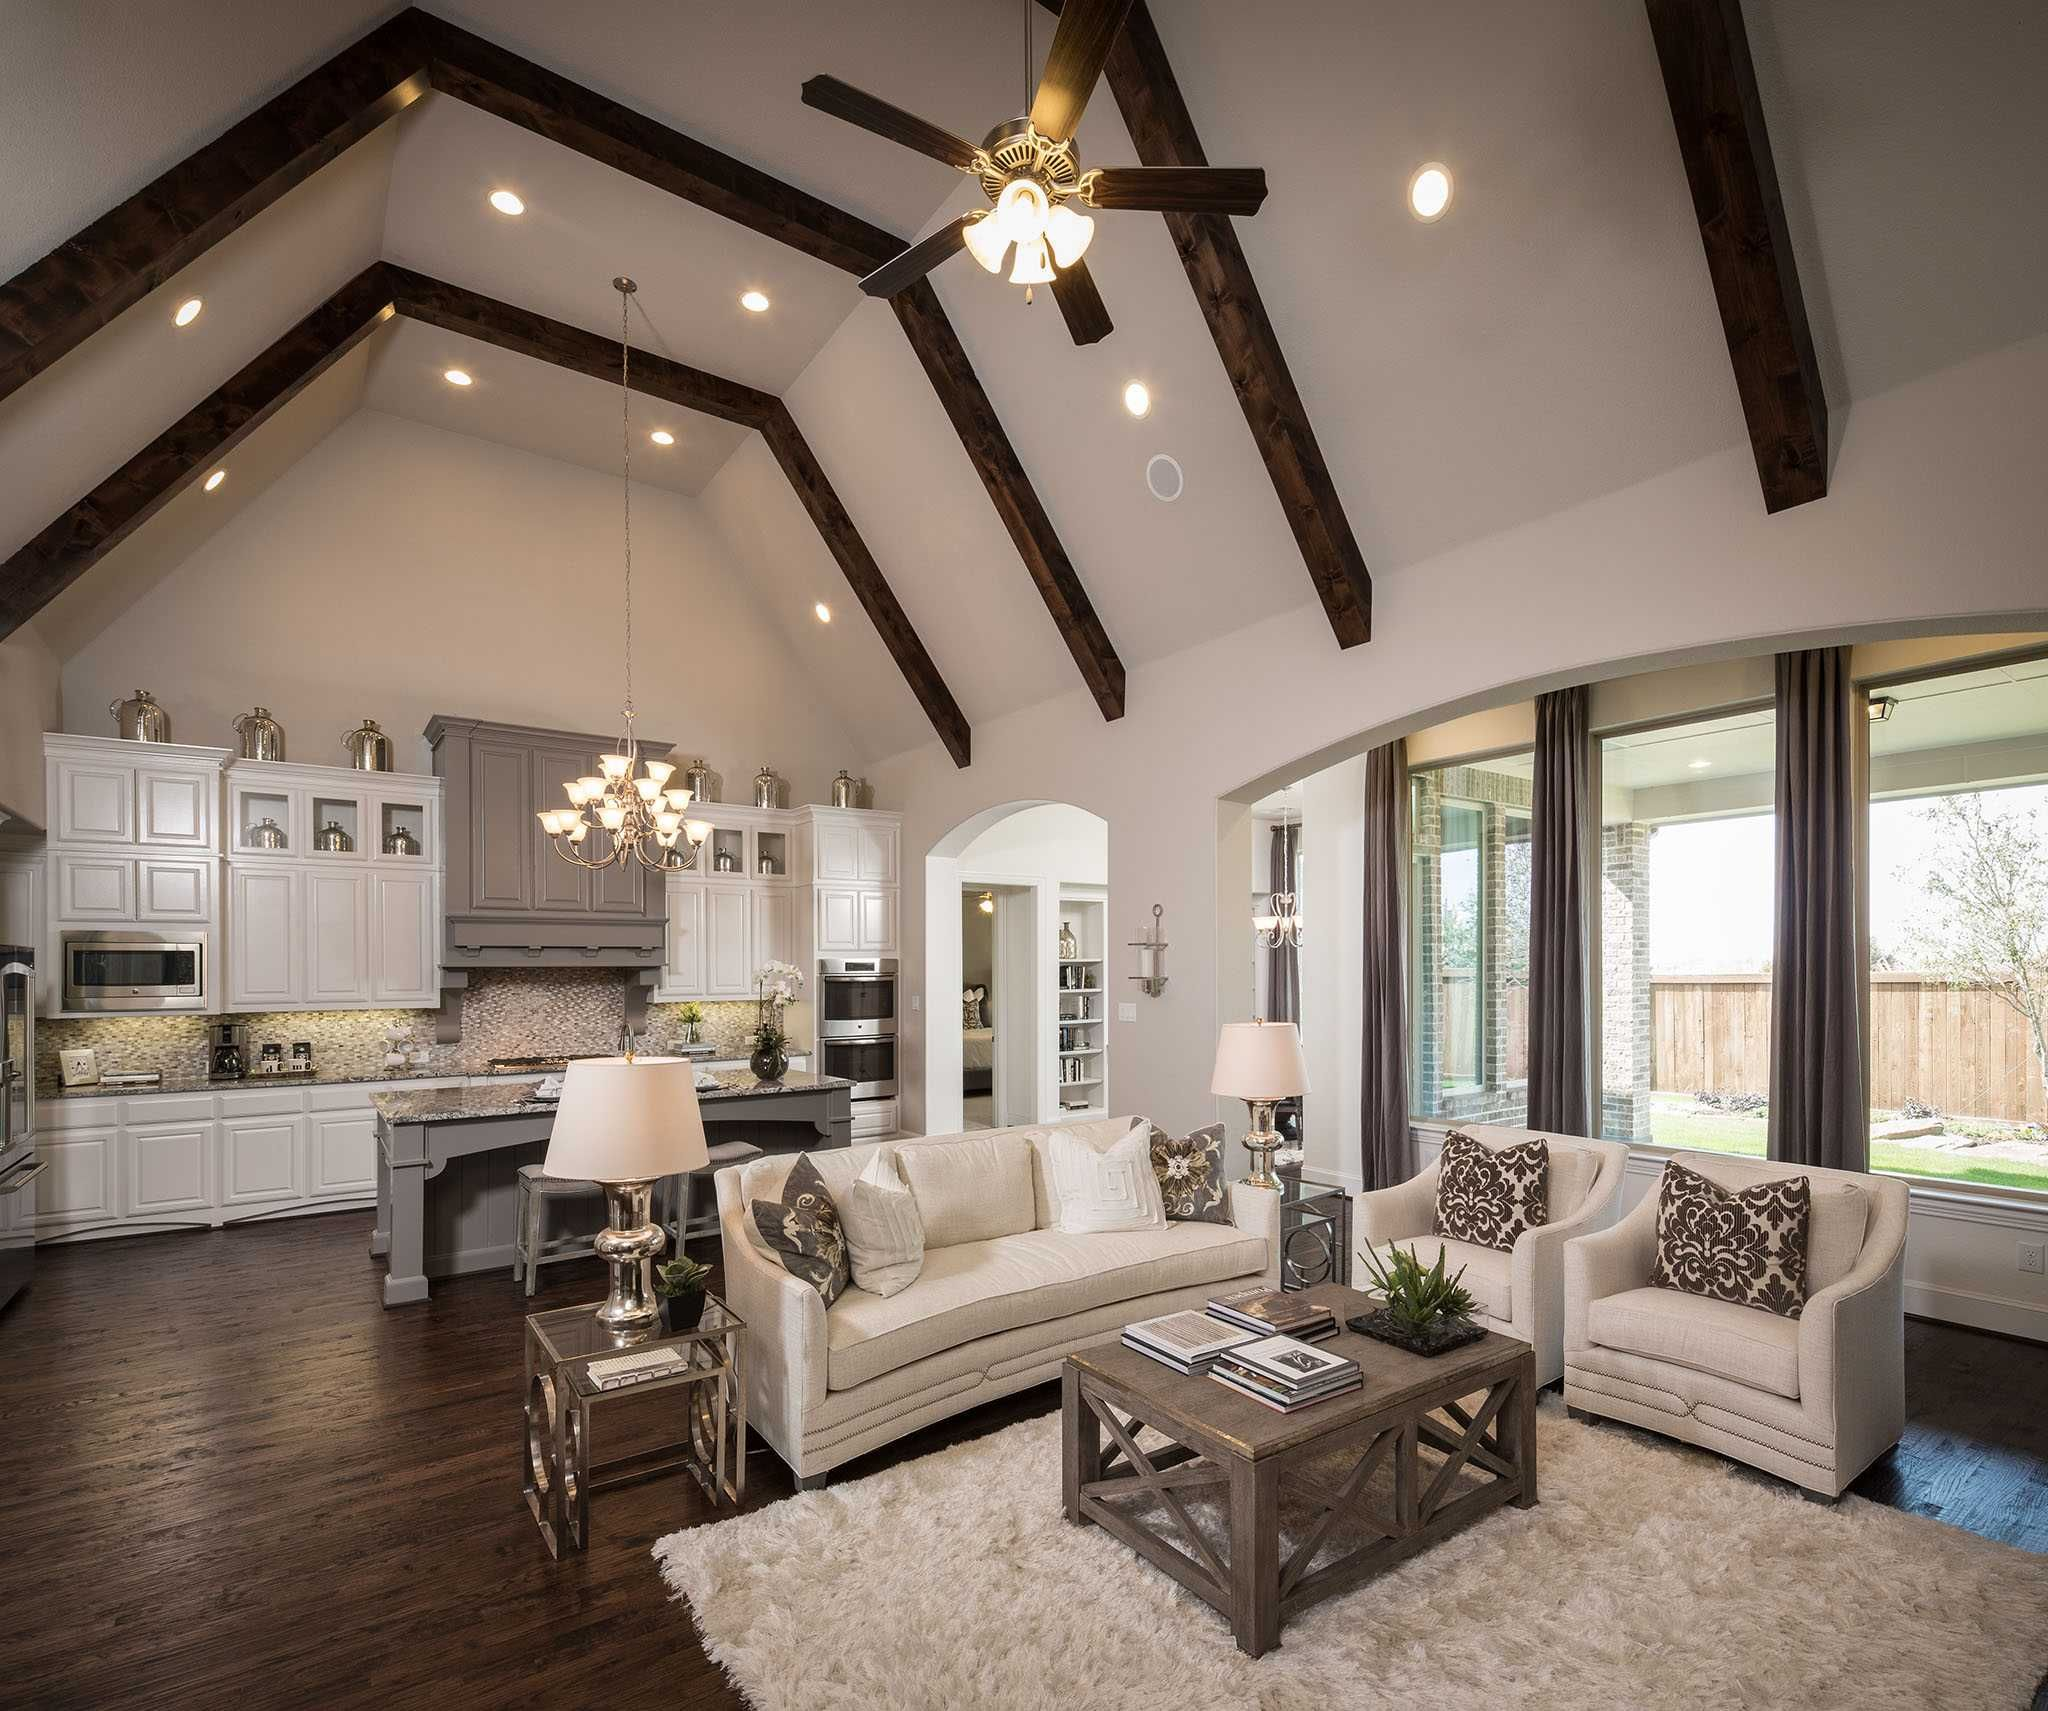 New Home Plan 292 In Fulshear, TX 77441